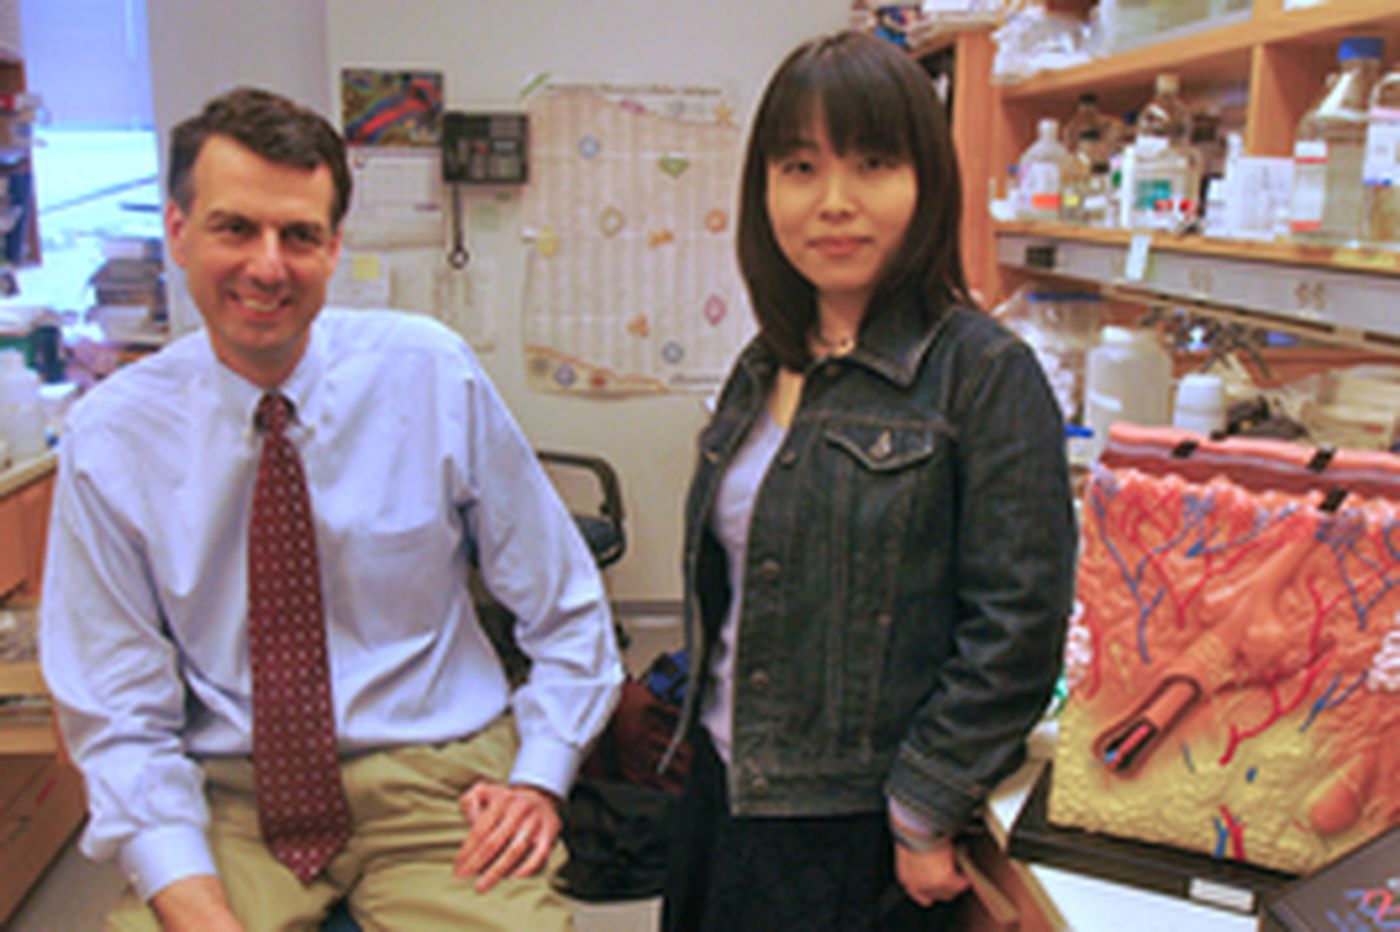 At Penn, the research is hair-raising, positively